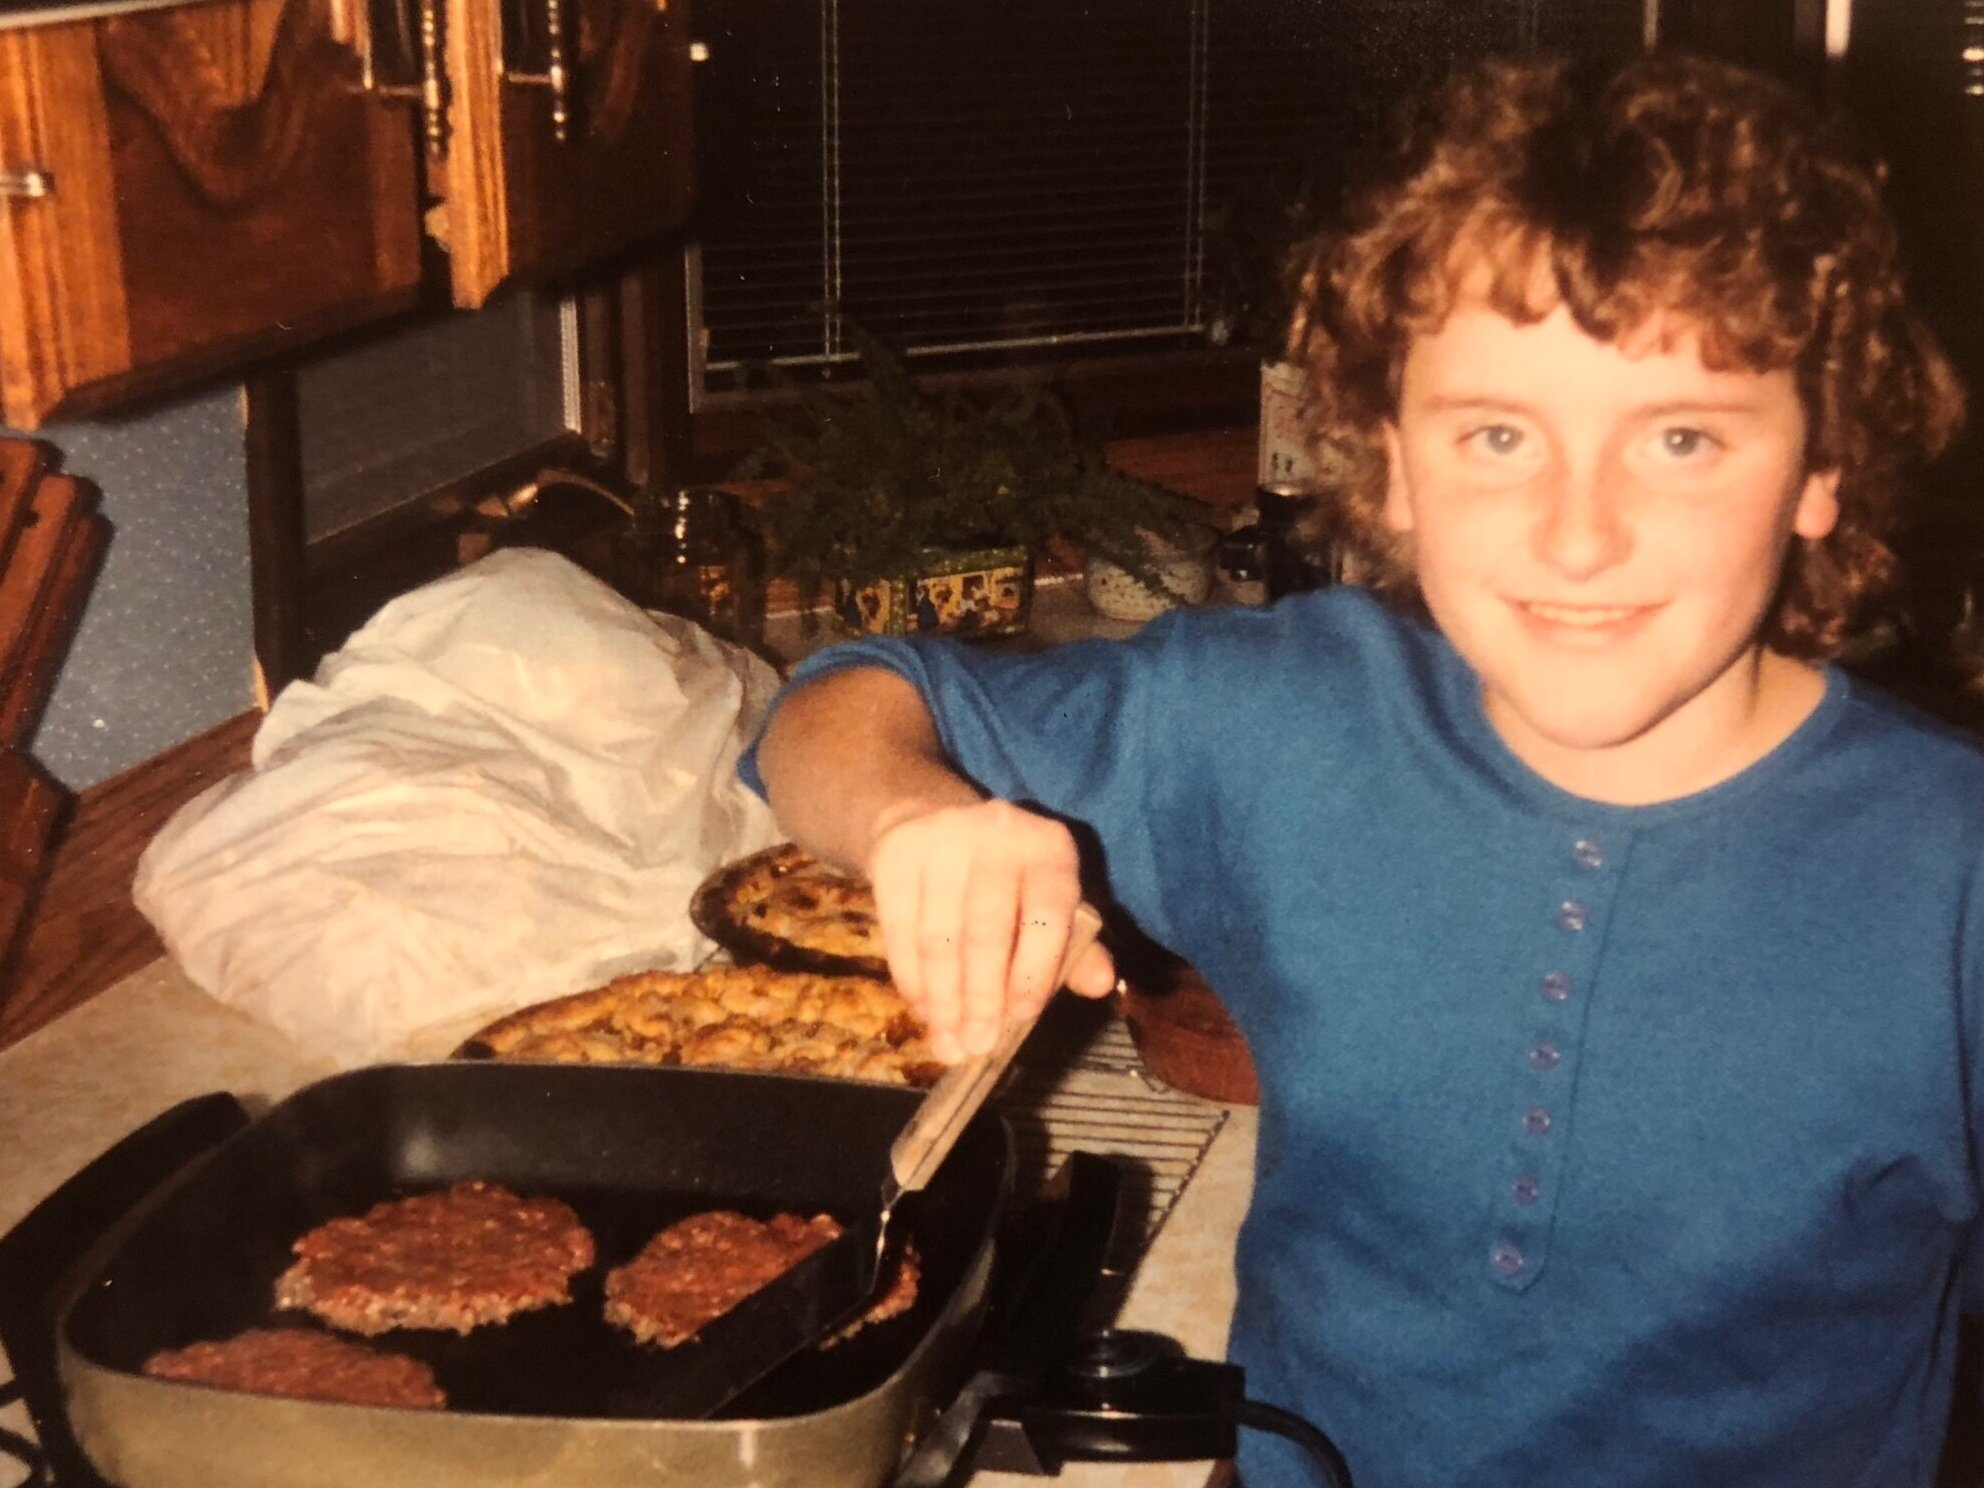 Ten year-old me just casually frying up some burgers on a Friday night, as you do. Also, pie.